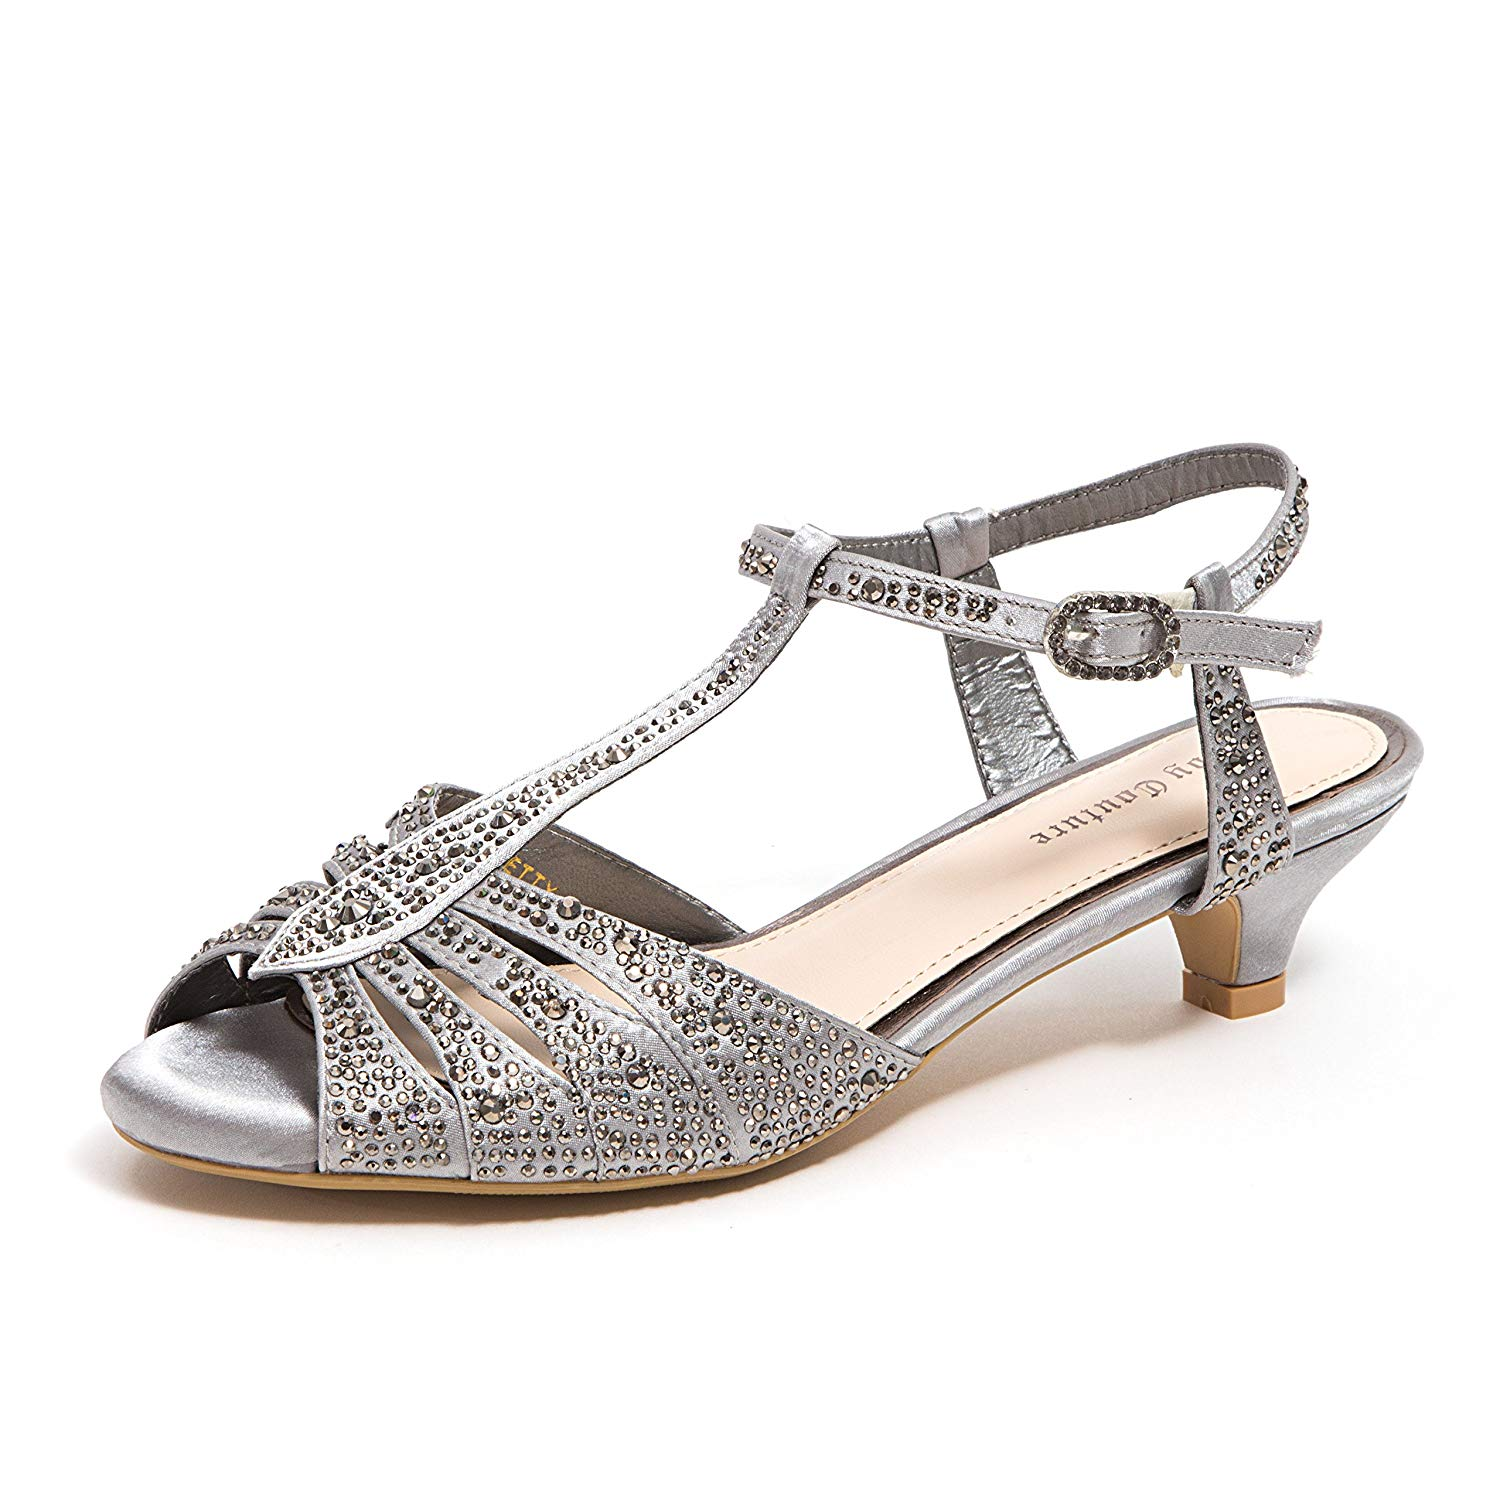 15581205bb99 Get Quotations · Lady Couture Women s Wide Width Dressy Sandals with  Rhinestone